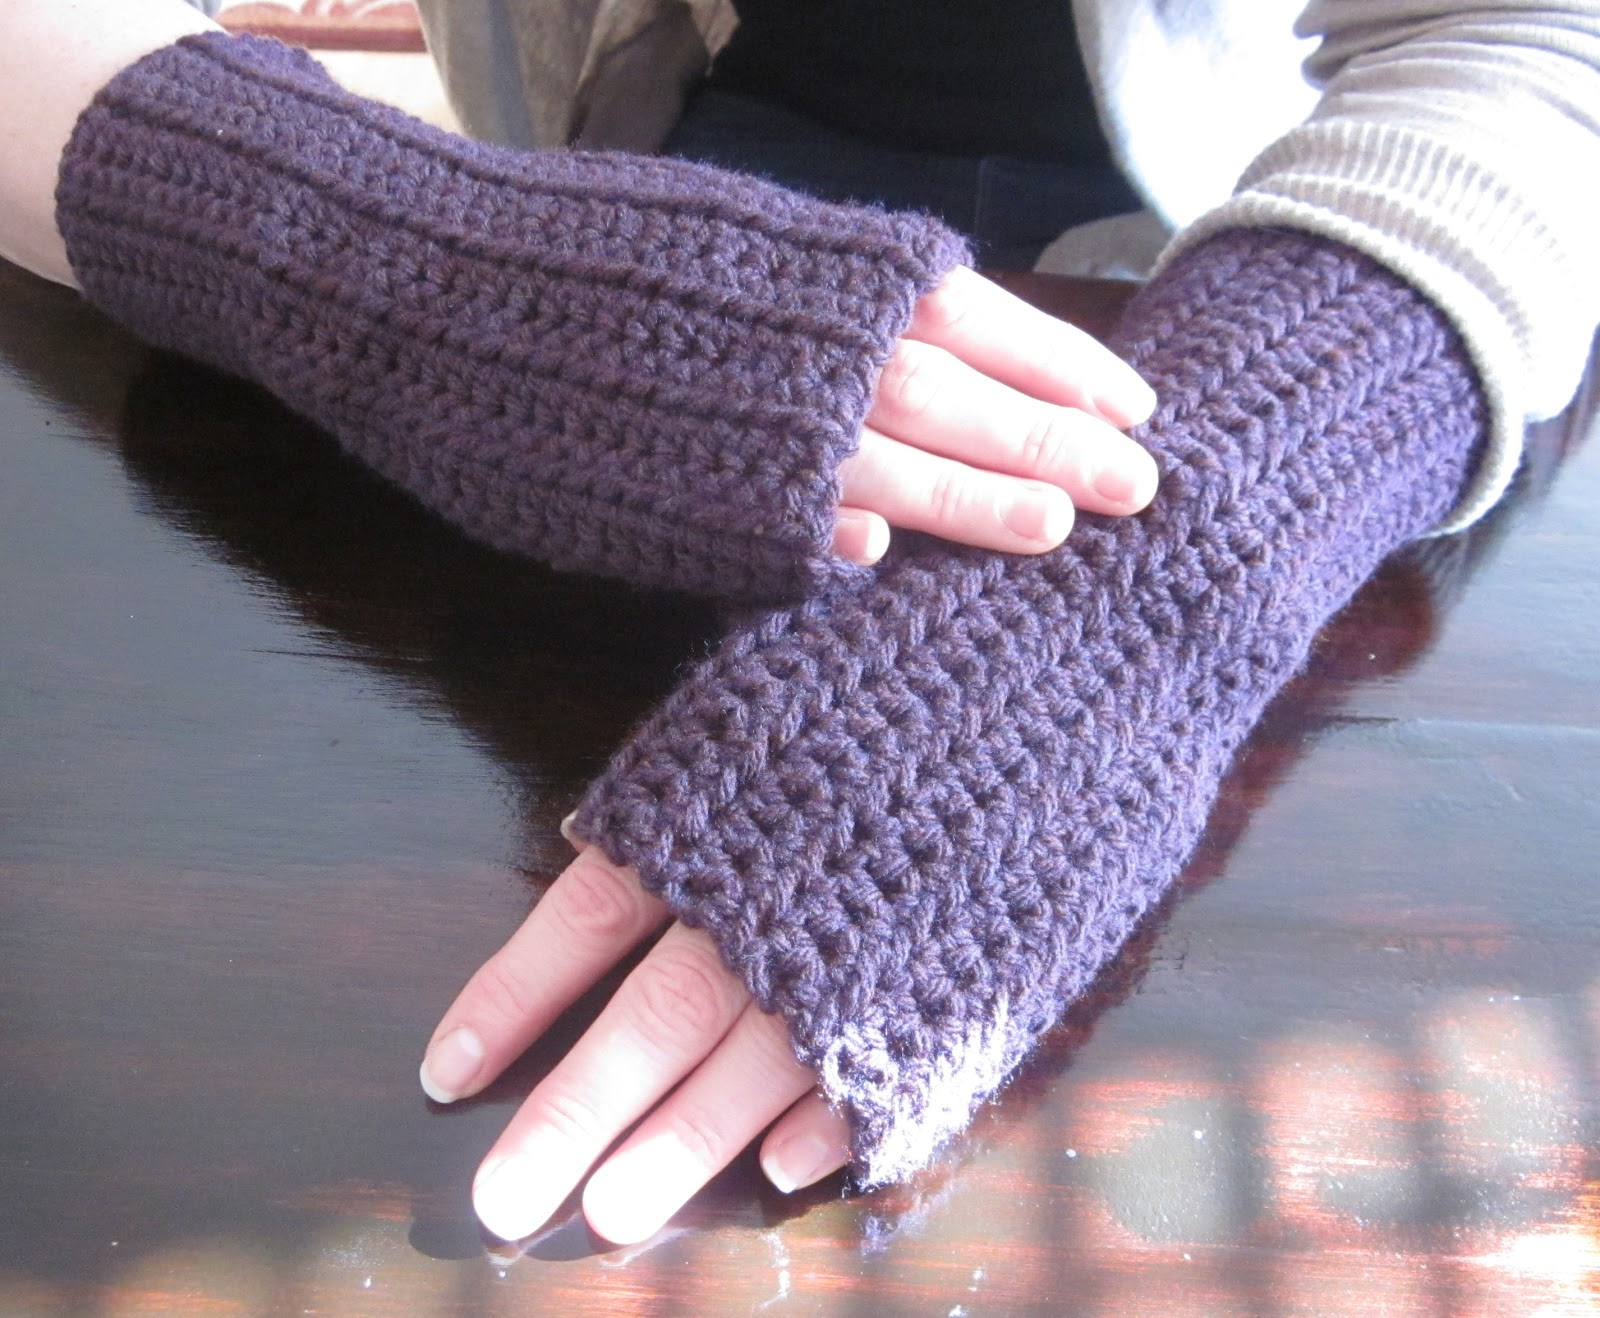 Crochet Gloves Awesome the Crafty Novice Diy Crochet Fingerless Gloves Of Amazing 45 Ideas Crochet Gloves